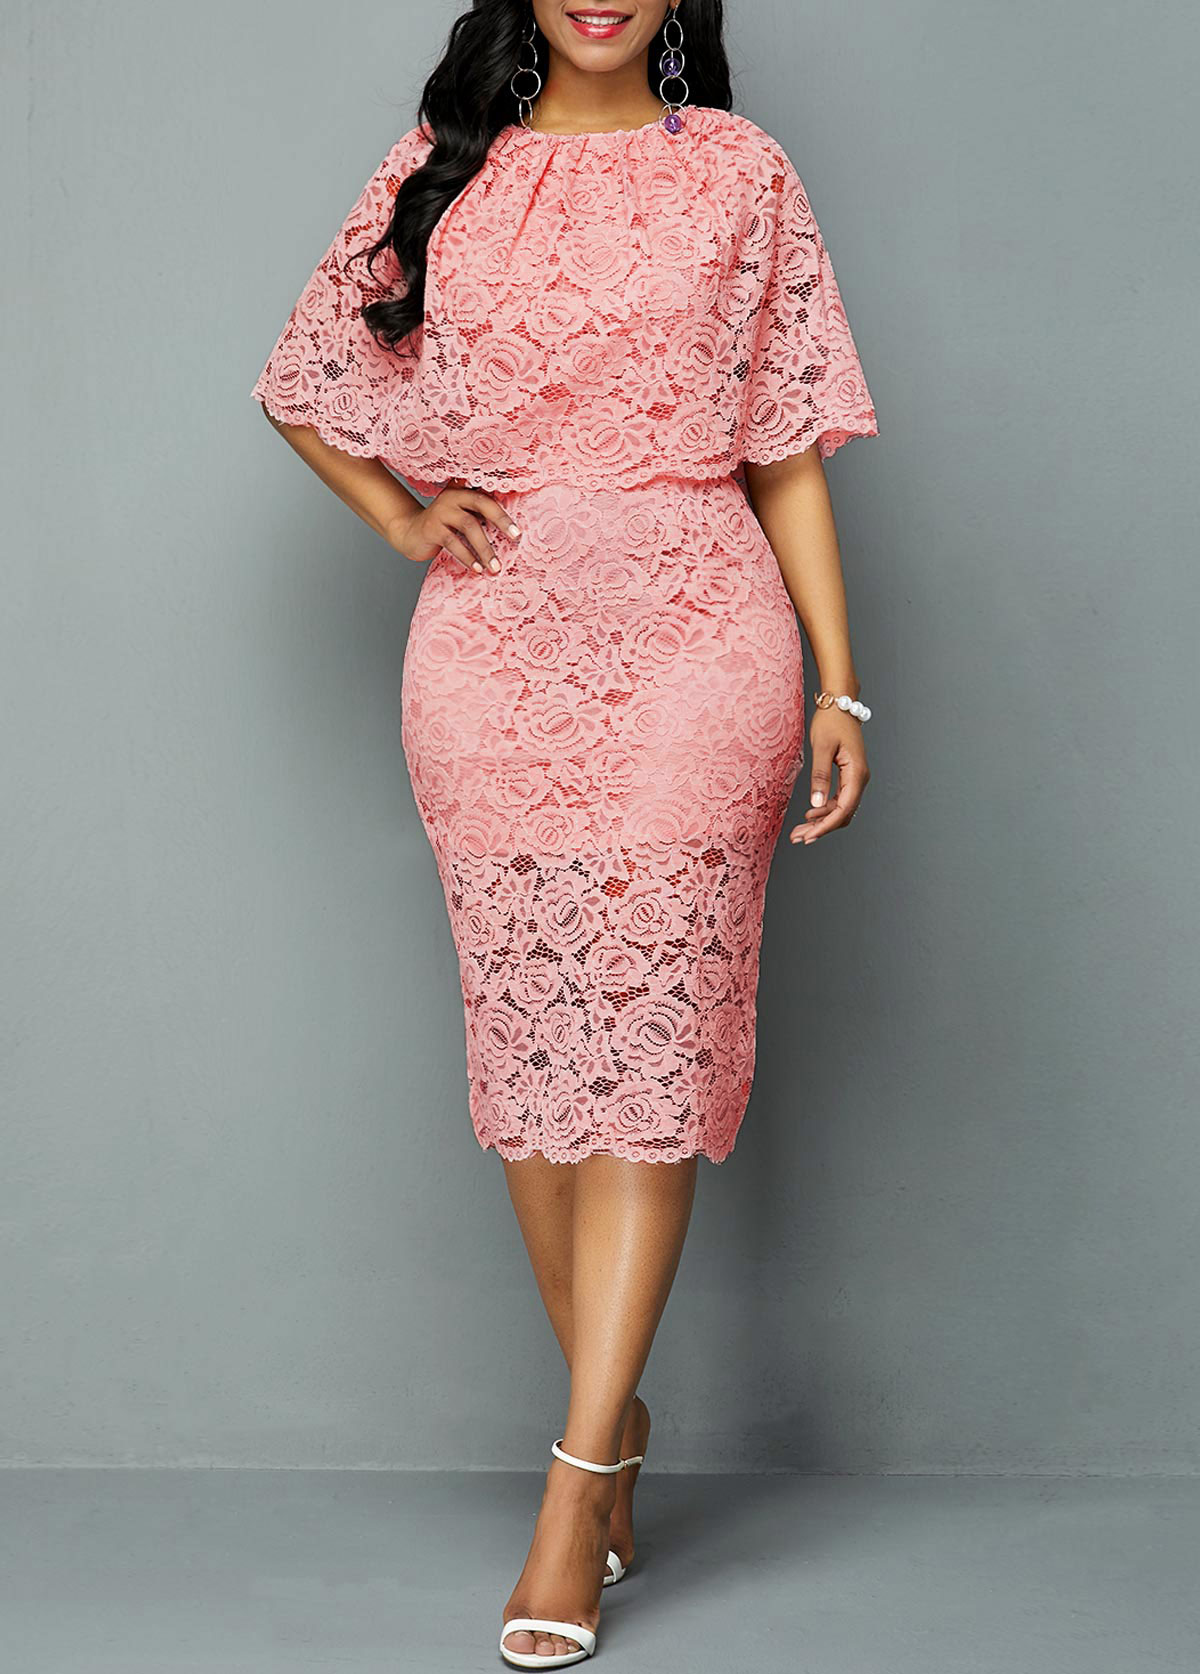 Overlay Embellished Half Sleeve Lace Dress